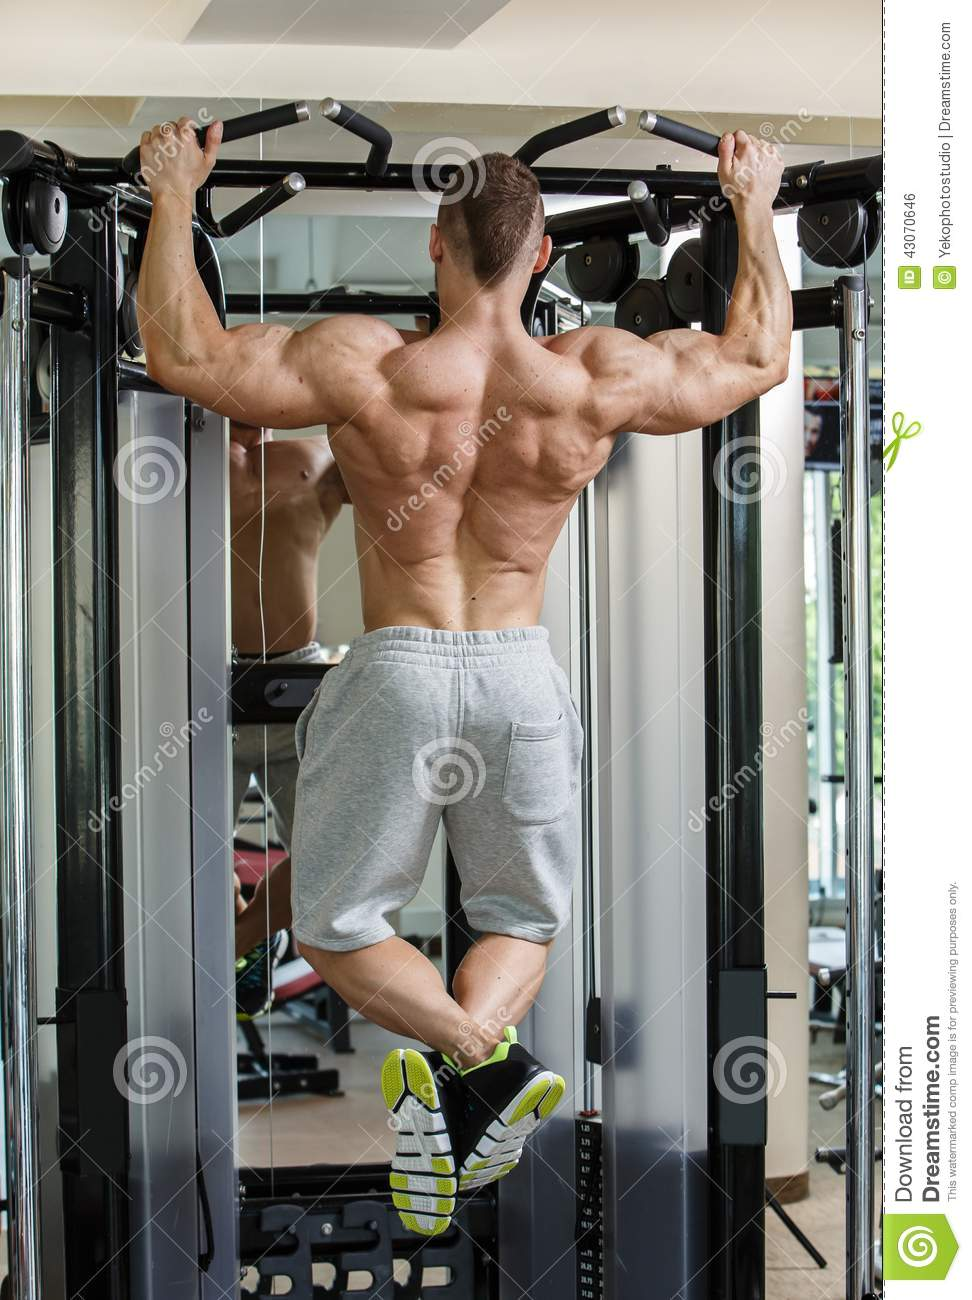 Gym. Handsome Man During Workout Stock Photo - Image: 43070646